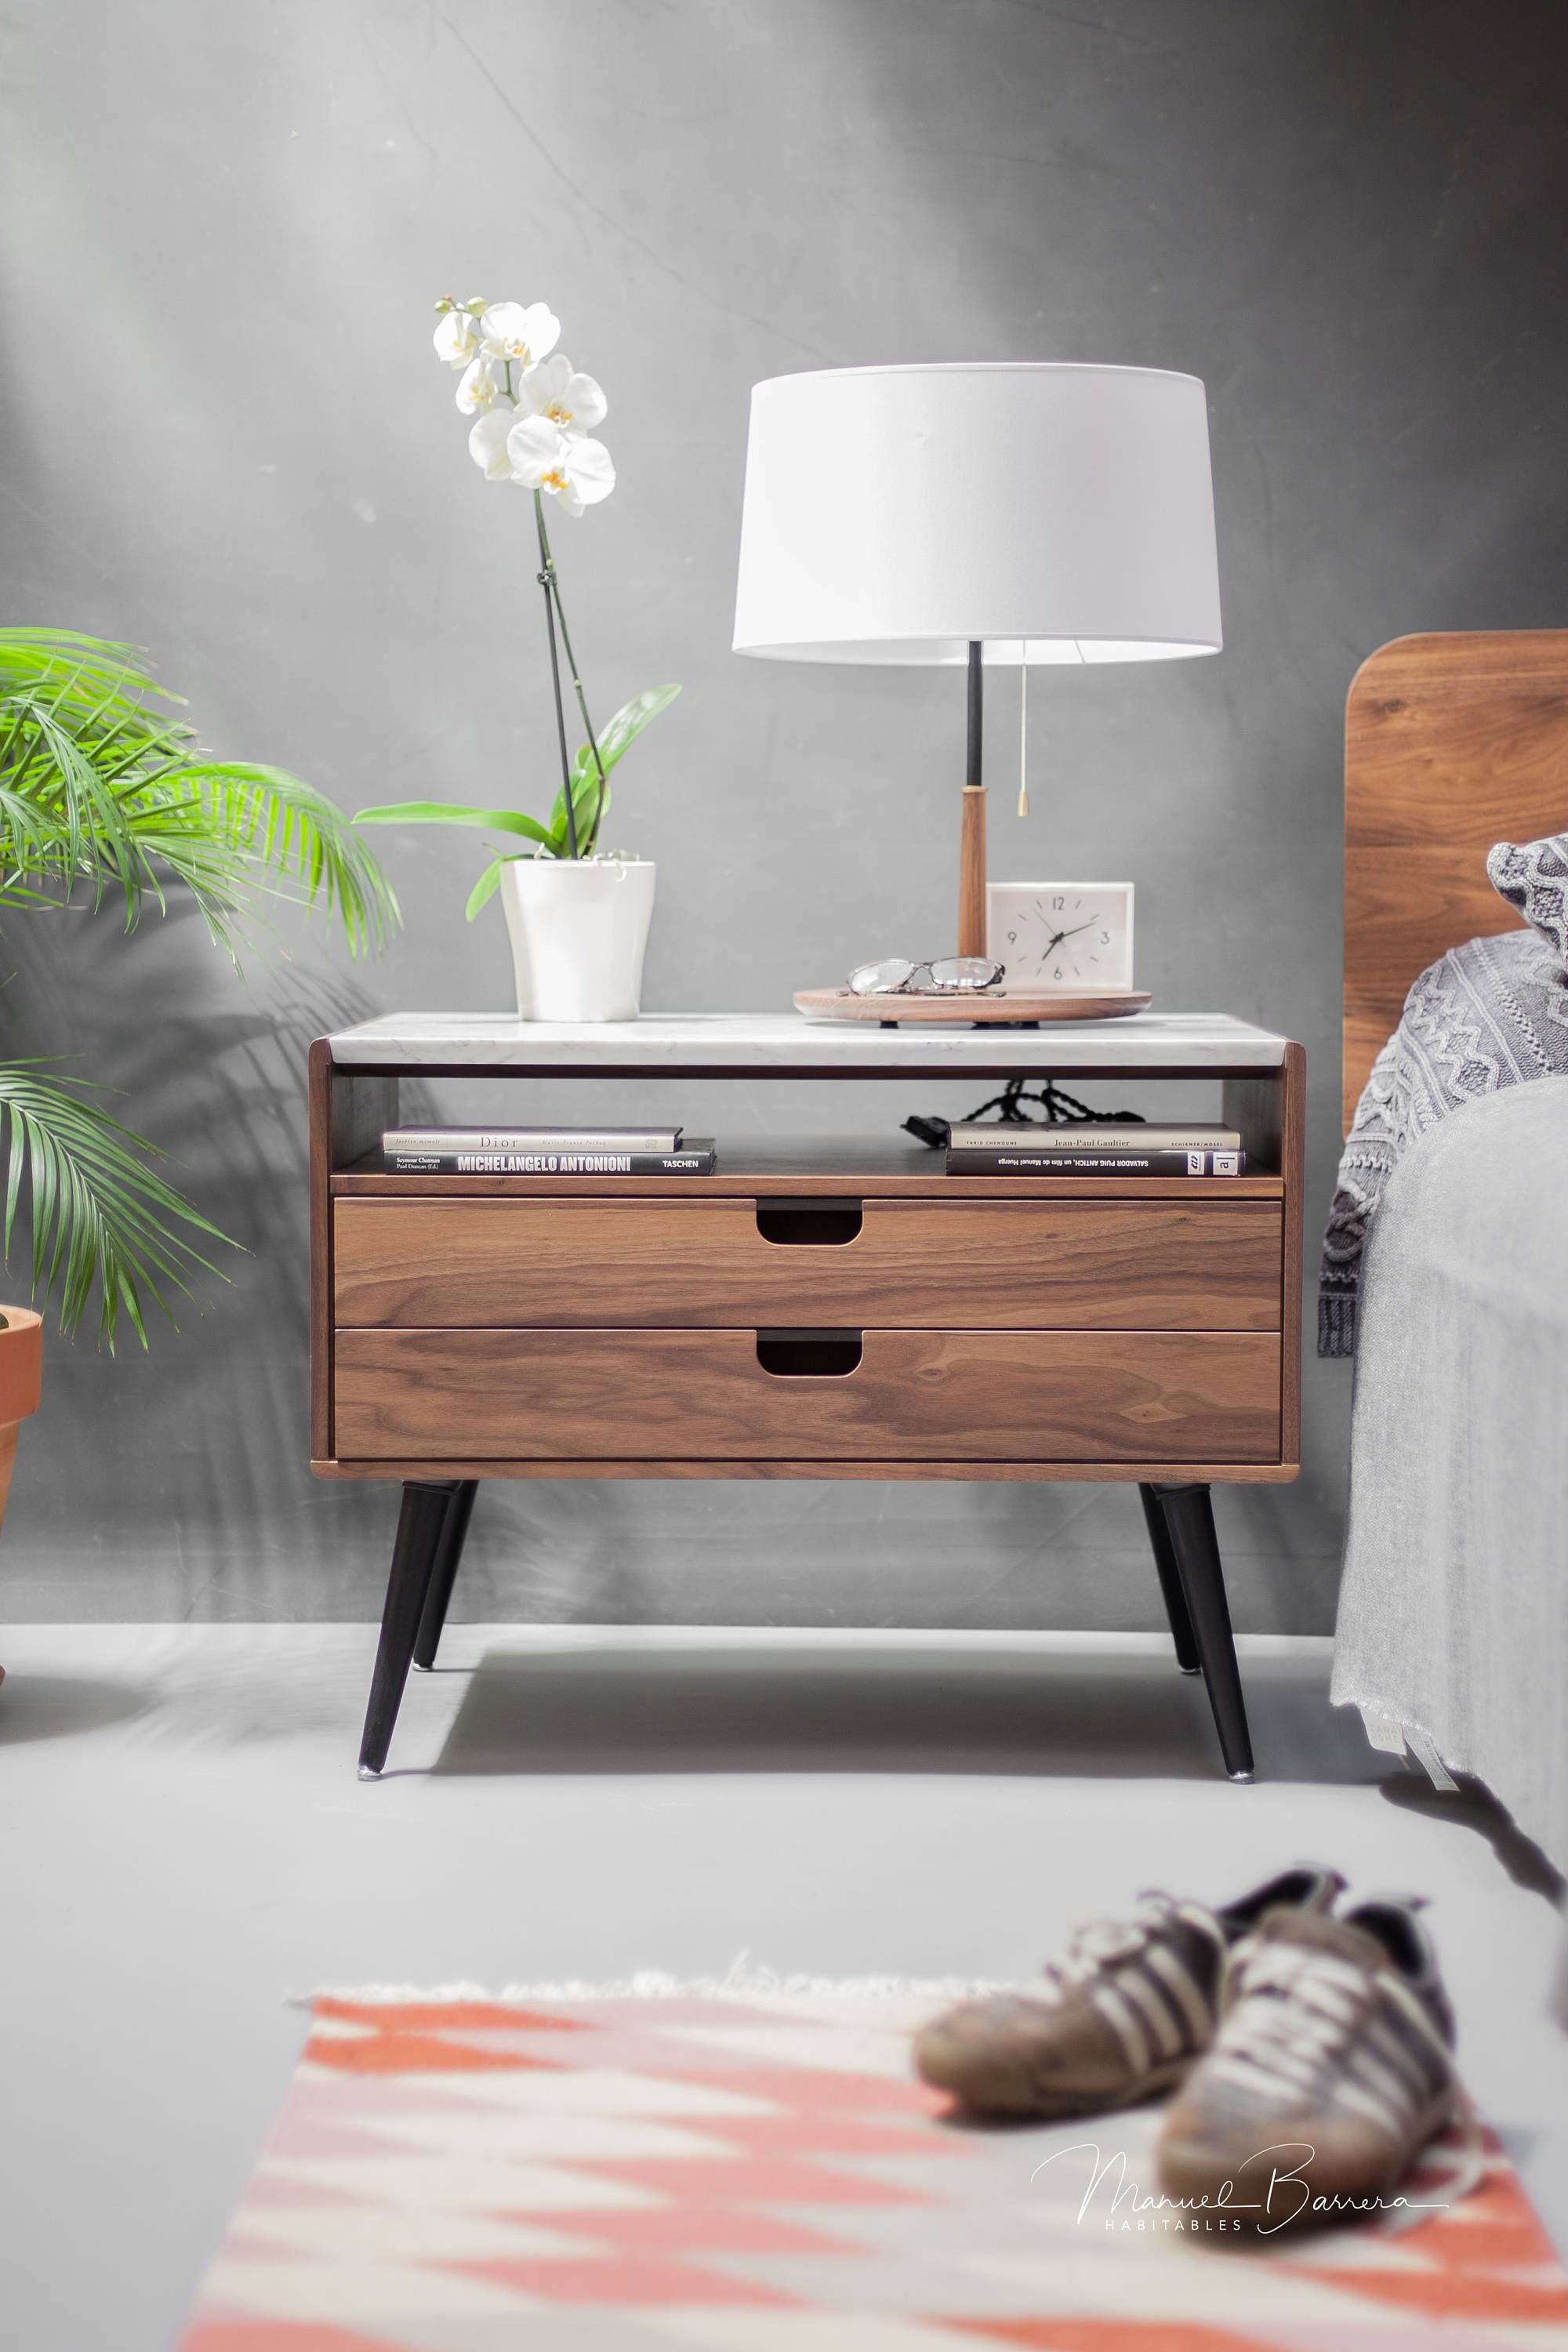 Nightstand With Two Drawers In Solid Walnut Oak Wood Board And On Top Carrara Marble By Habitables On Etsy Furniture Furniture Design Room Decor